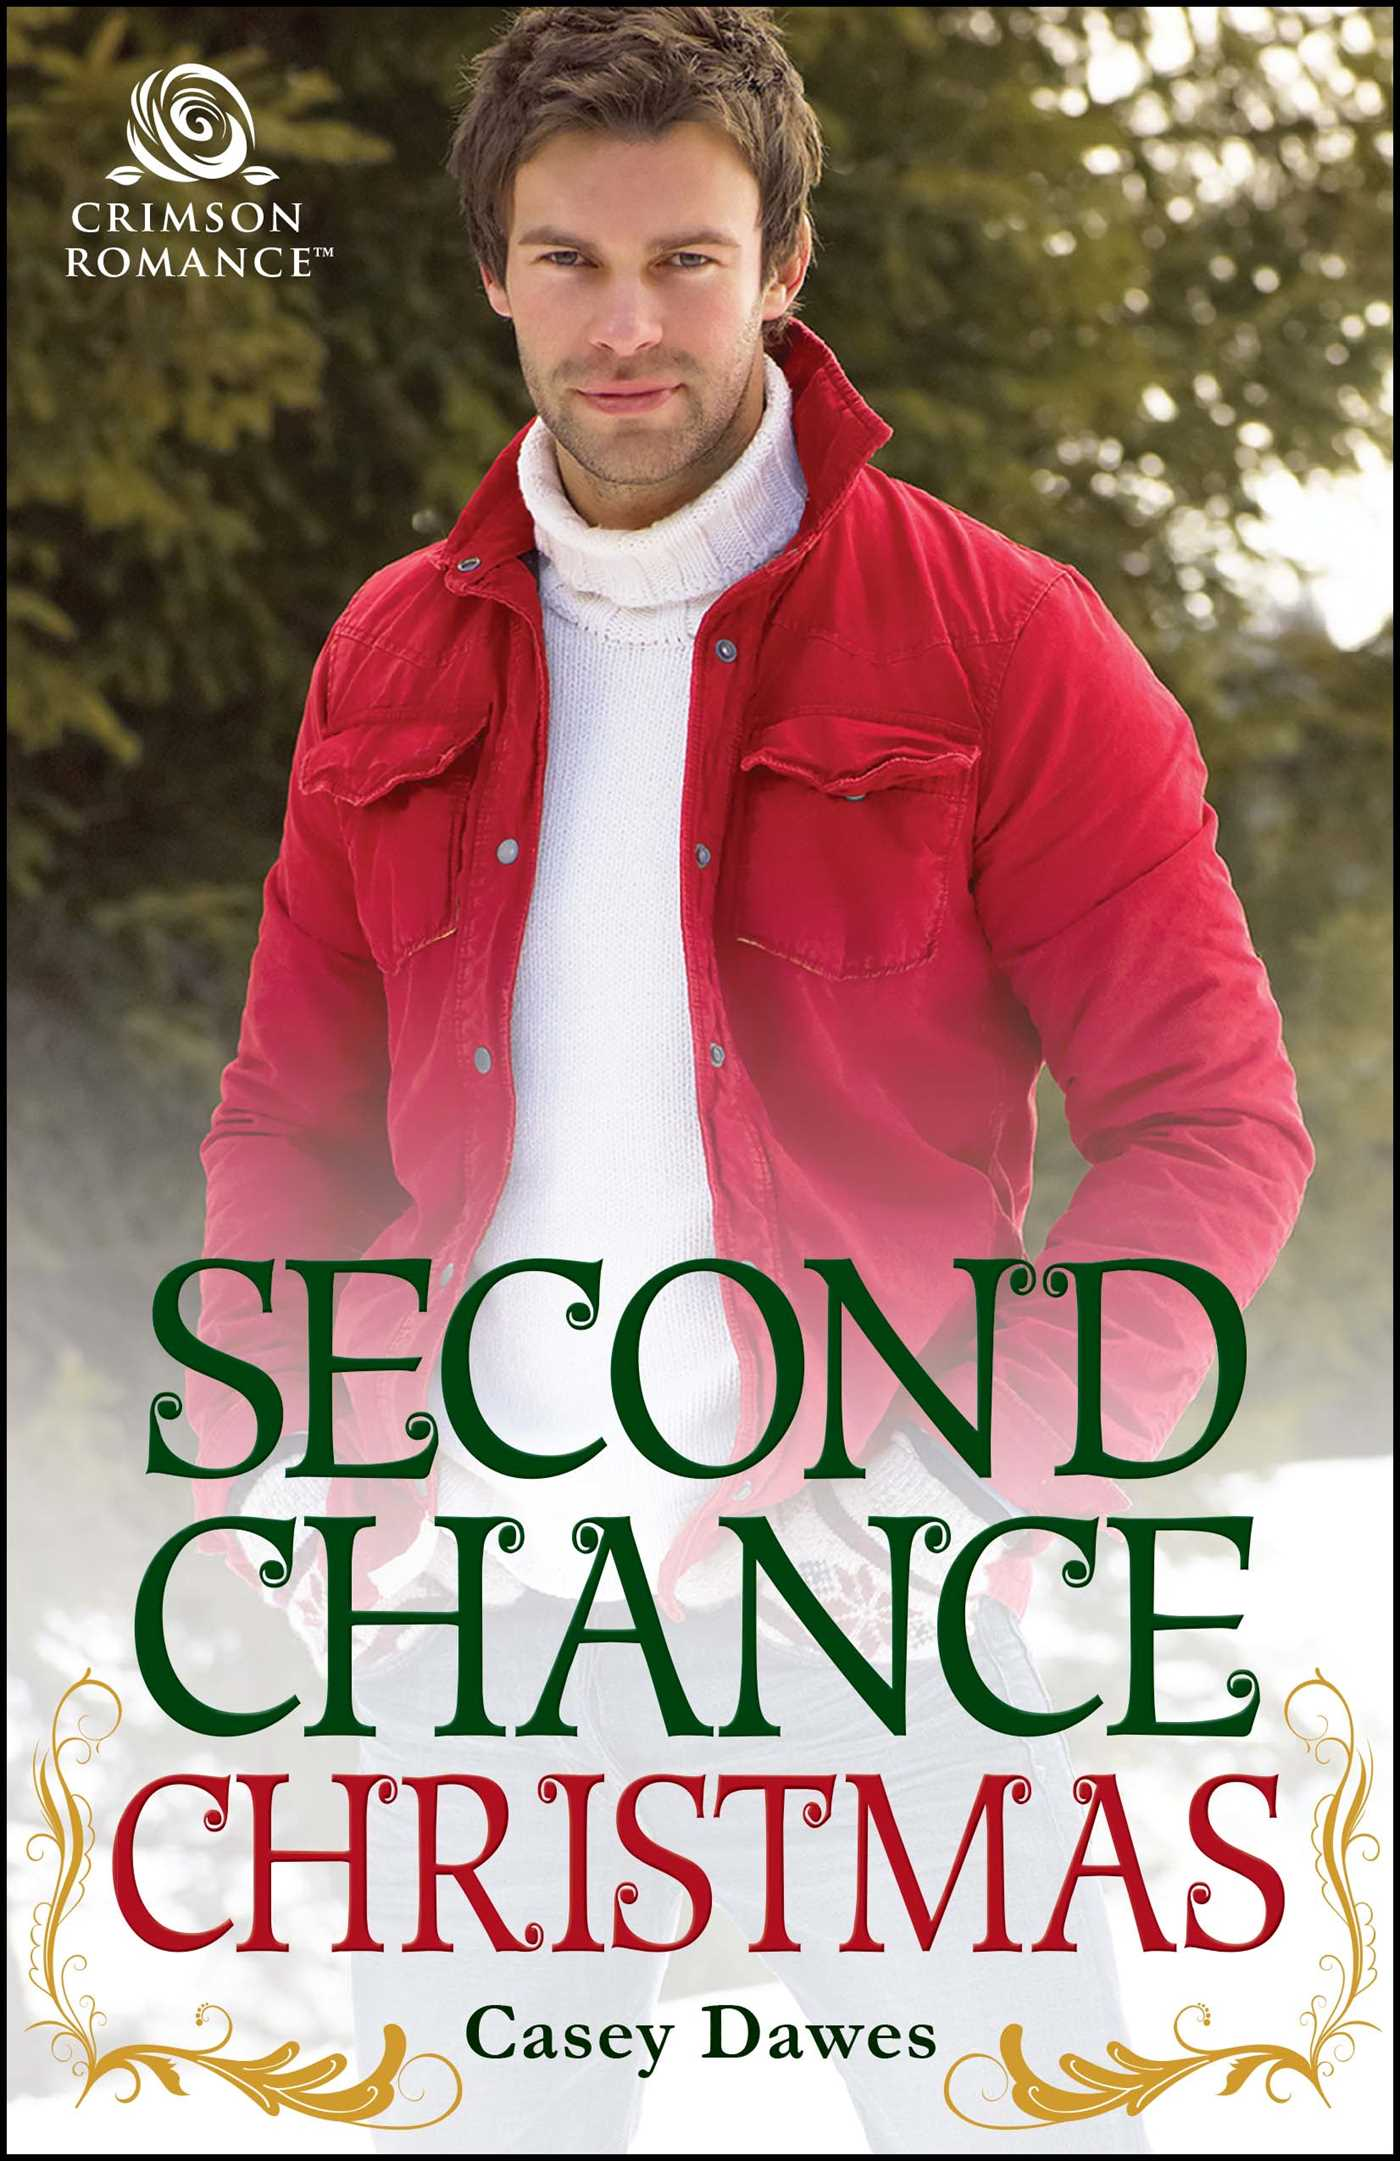 Second chance christmas 9781507208106 hr